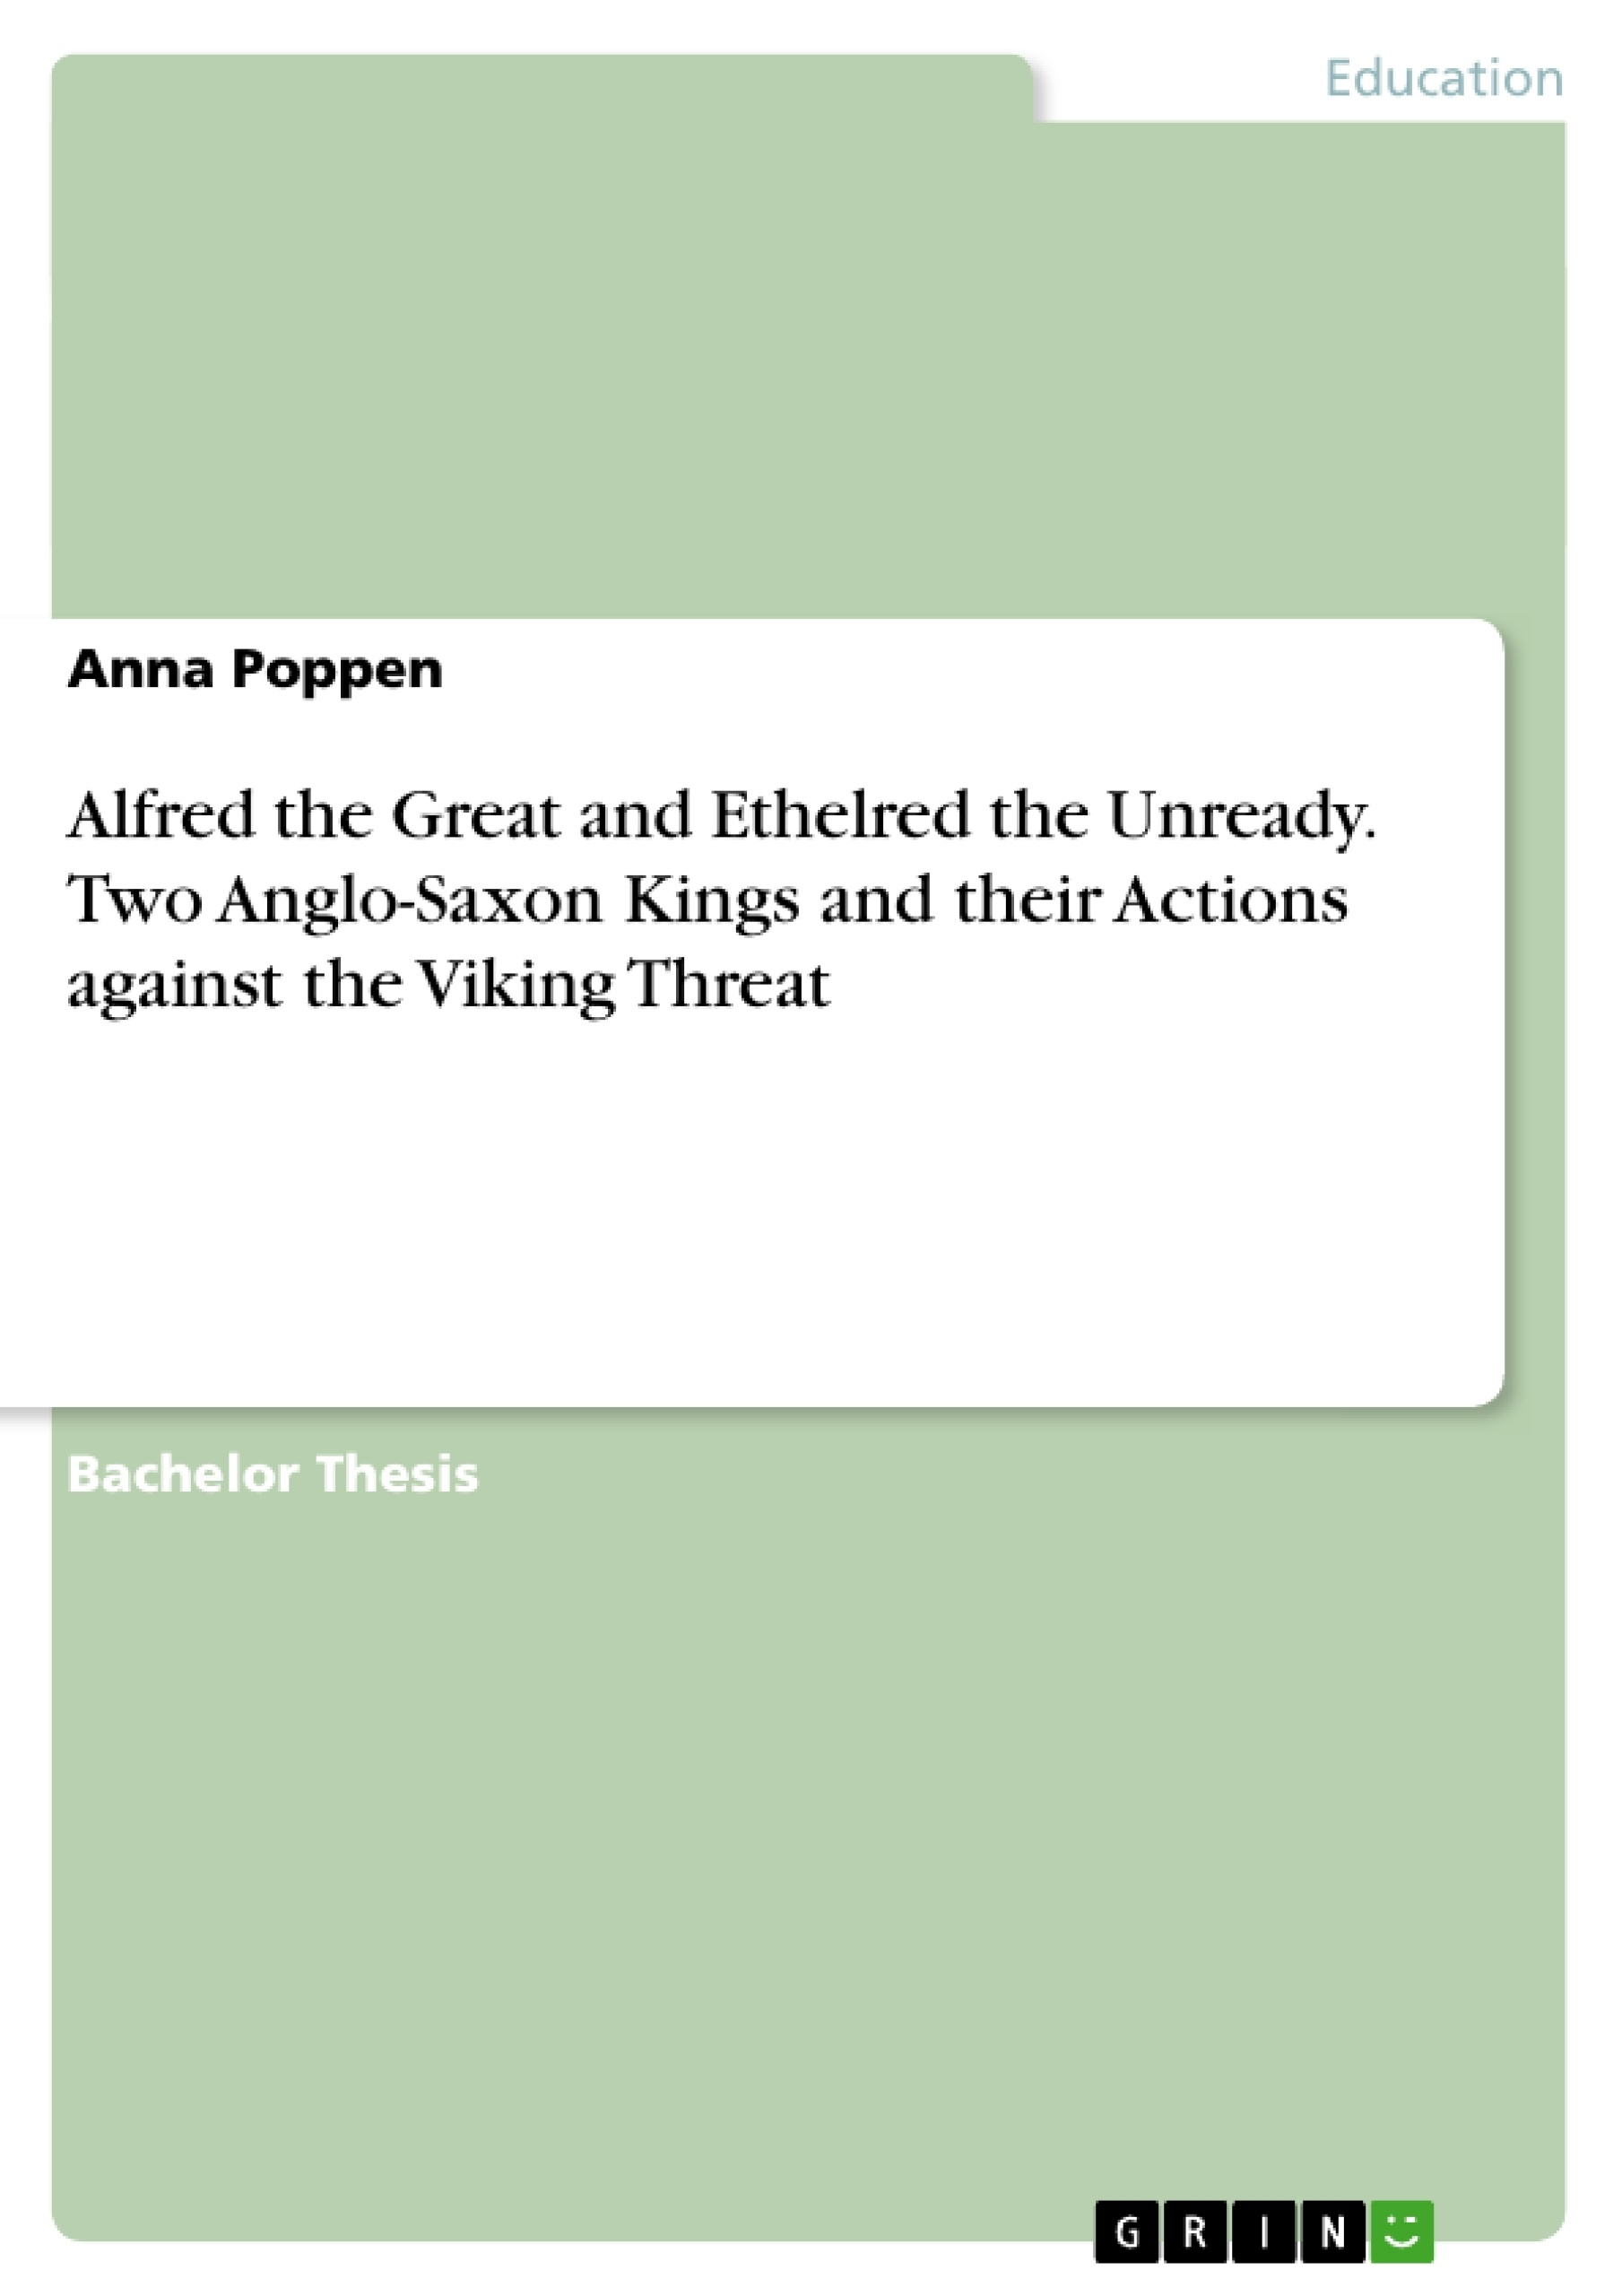 Title: Alfred the Great and Ethelred the Unready. Two Anglo-Saxon Kings and their Actions against the Viking Threat